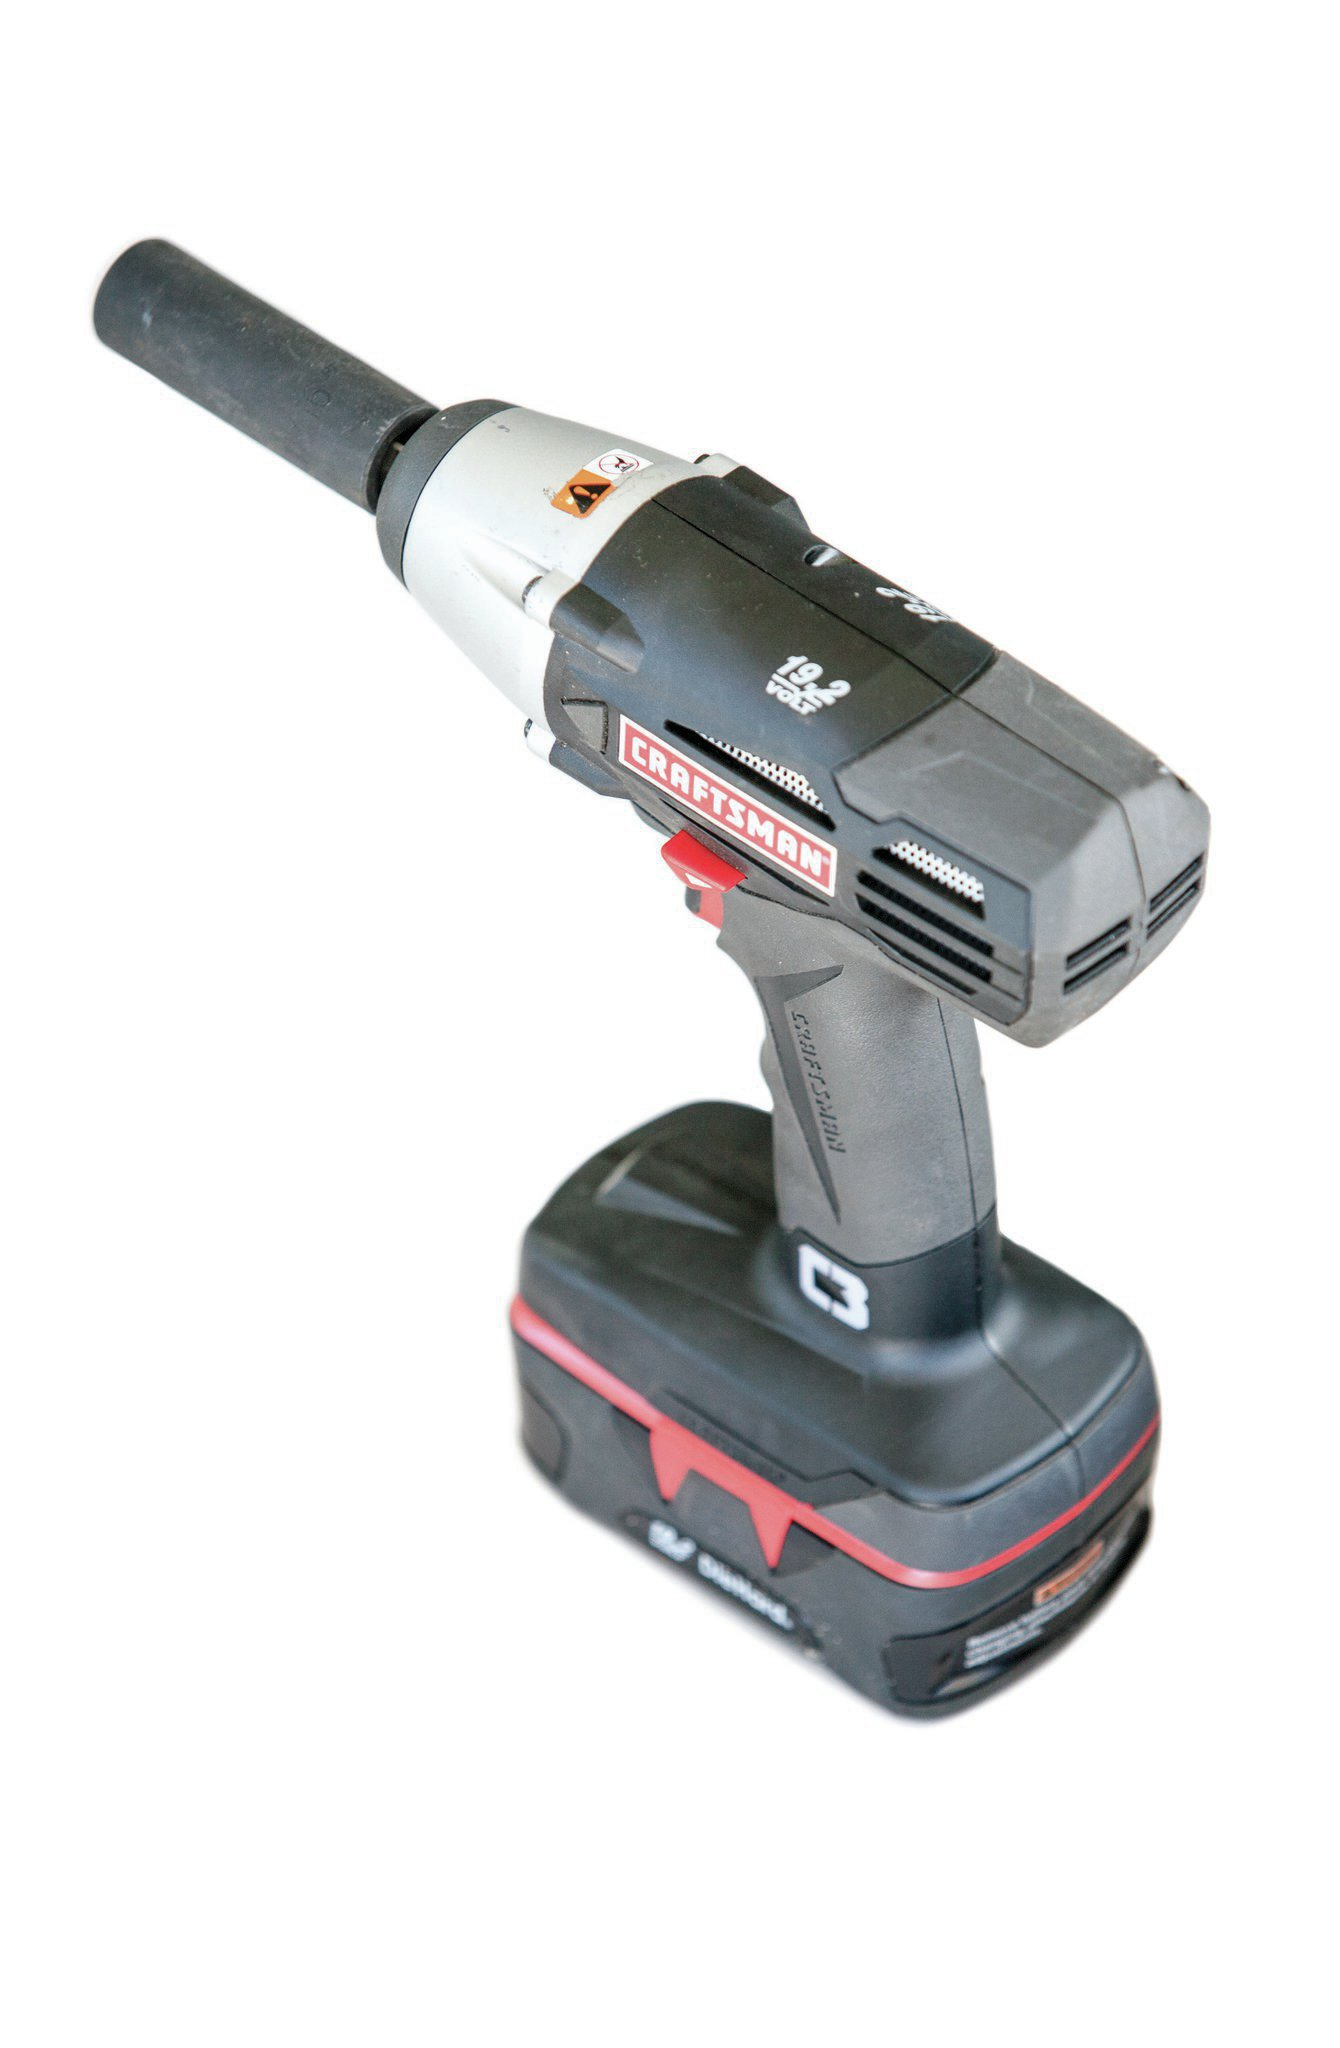 It's not as powerful as its air-powered cohort, but the cordless impact is invaluable when you've got to take it on the road or into a junkyard. New 19.2V C3 impact guns are about $160 at Craftsman.com.